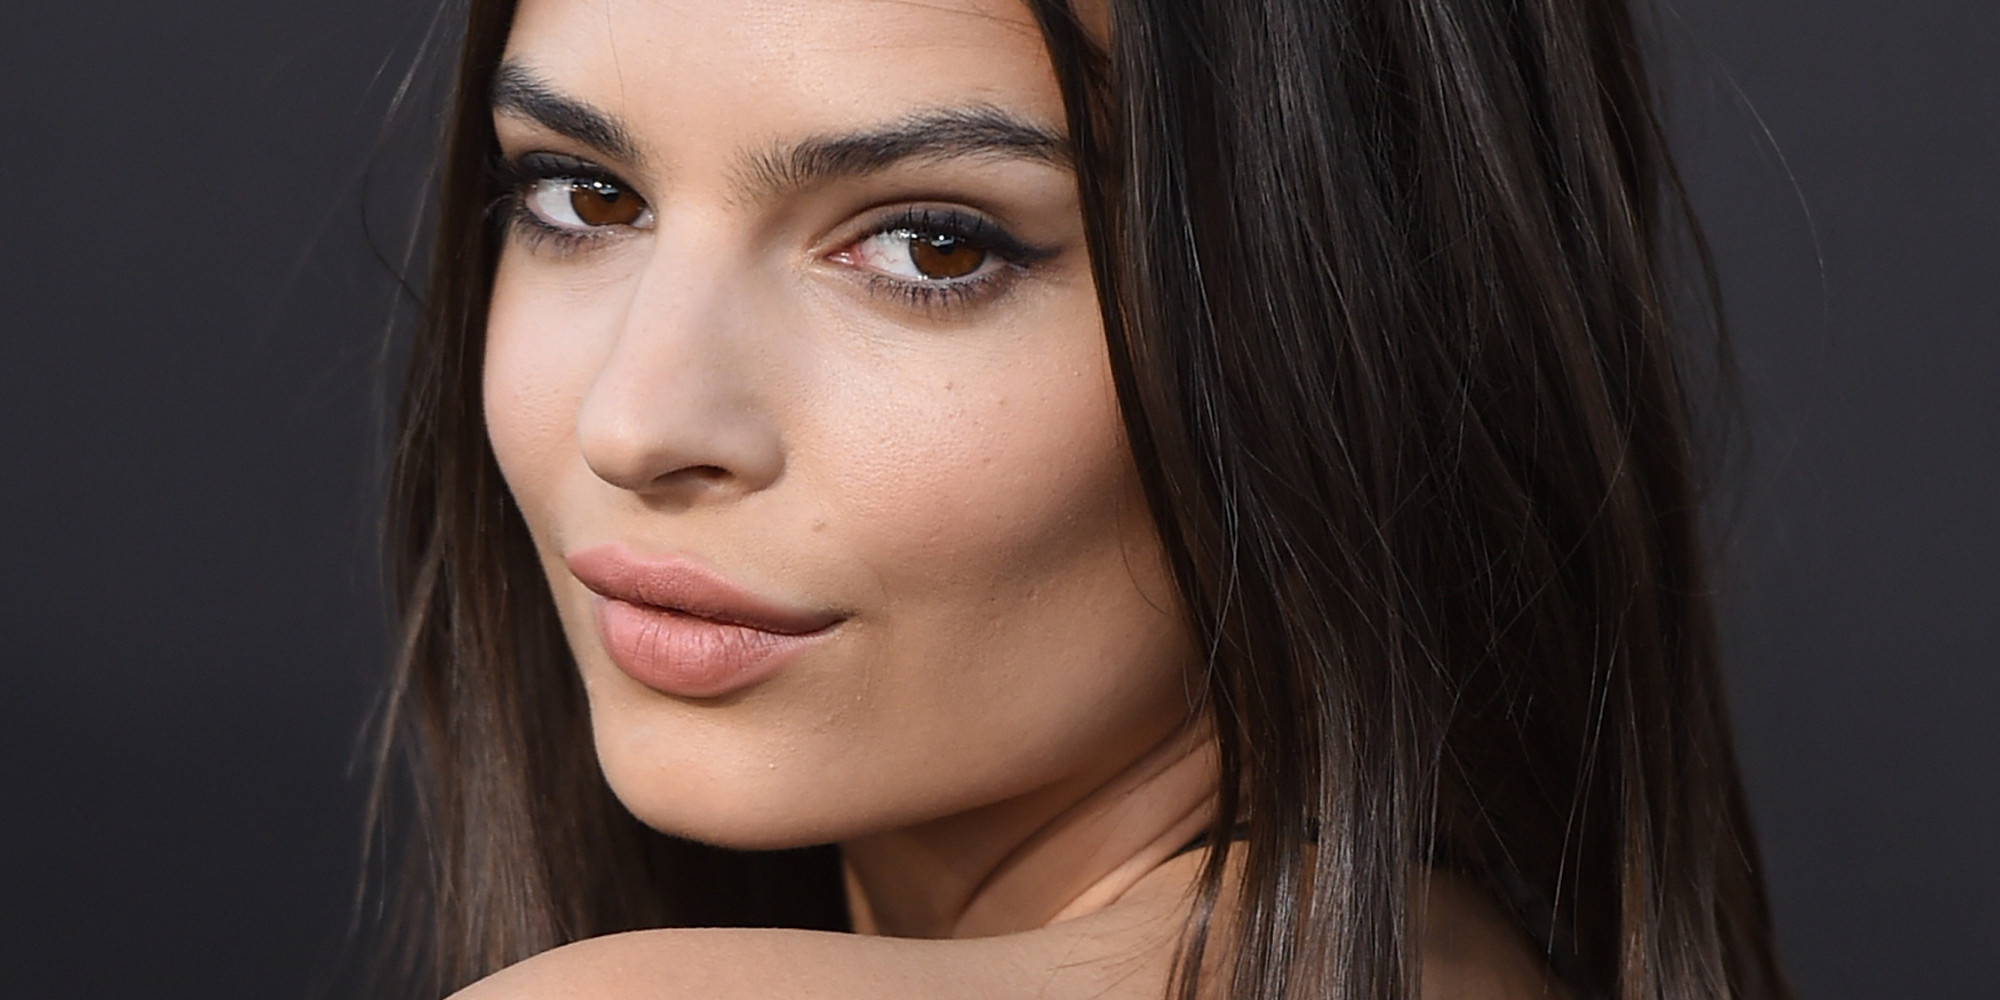 Emily Ratajkowski Wows In A Lace Dress After Posting Bathtub Selfie ...